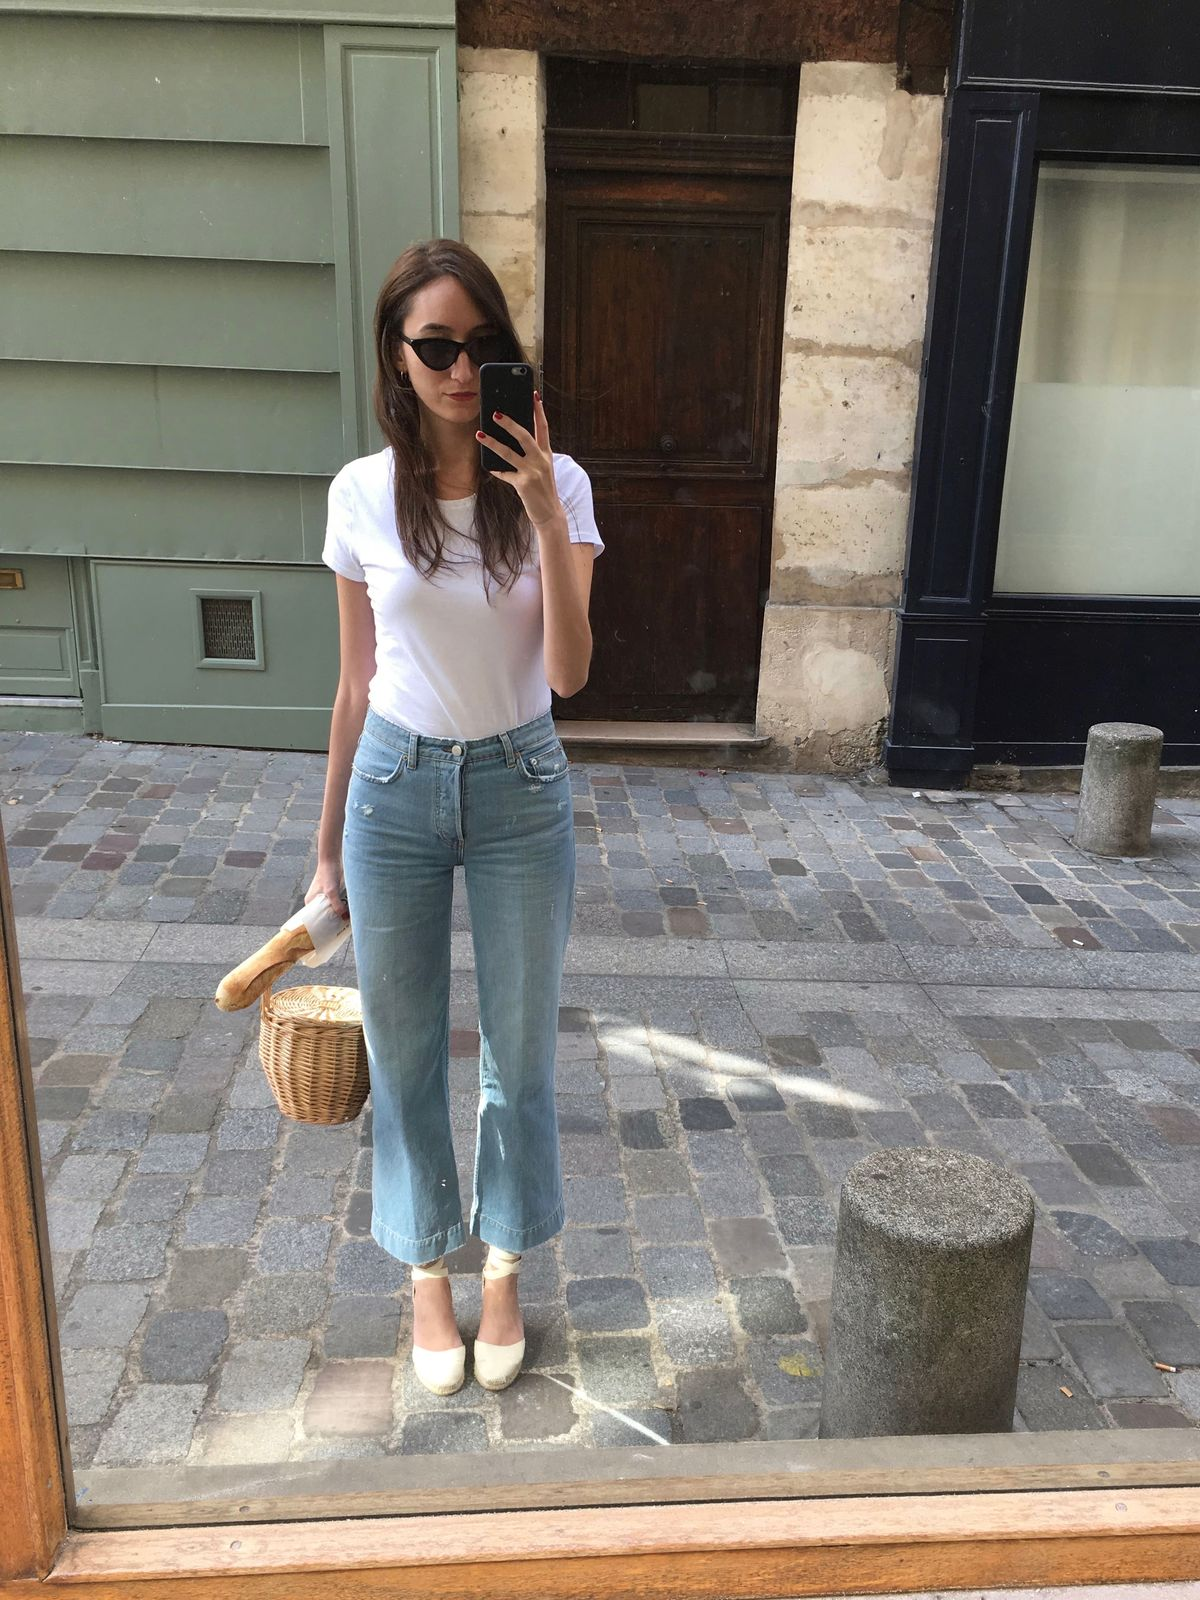 French Girl Accessories - basic white t-shirt, wide leg jeans, Birkin basket bag, Castaner espadrilles, black cat-eye sunglasses and a baguette